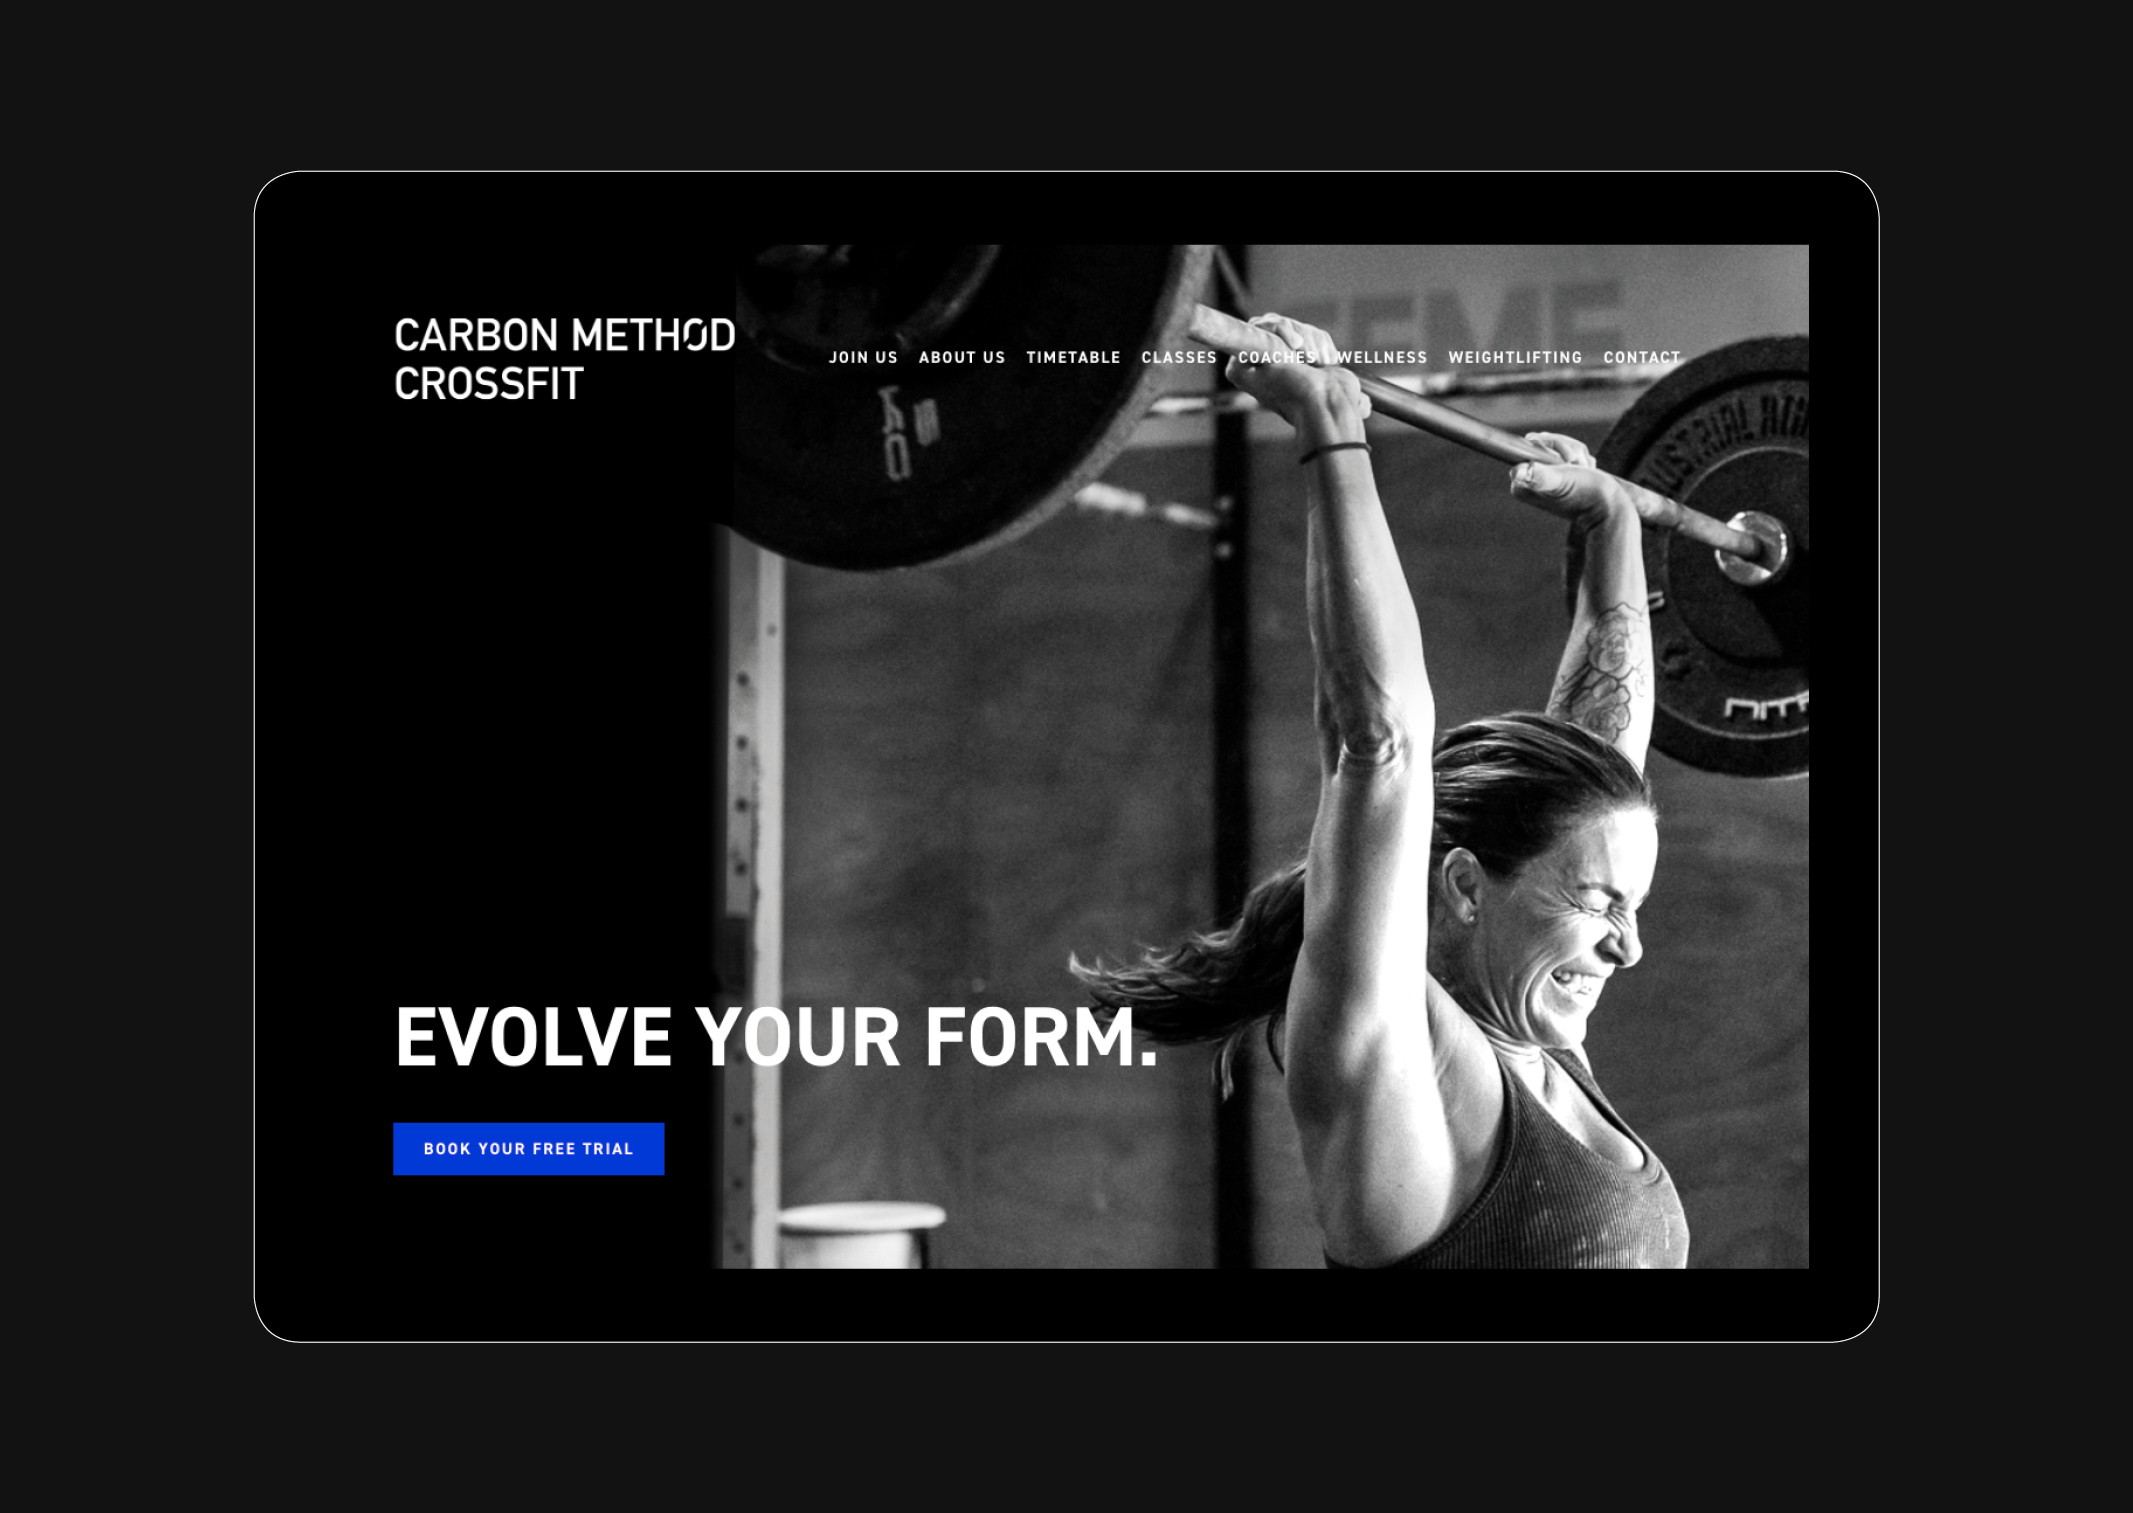 Carbon Method Crossfit Website Homepage